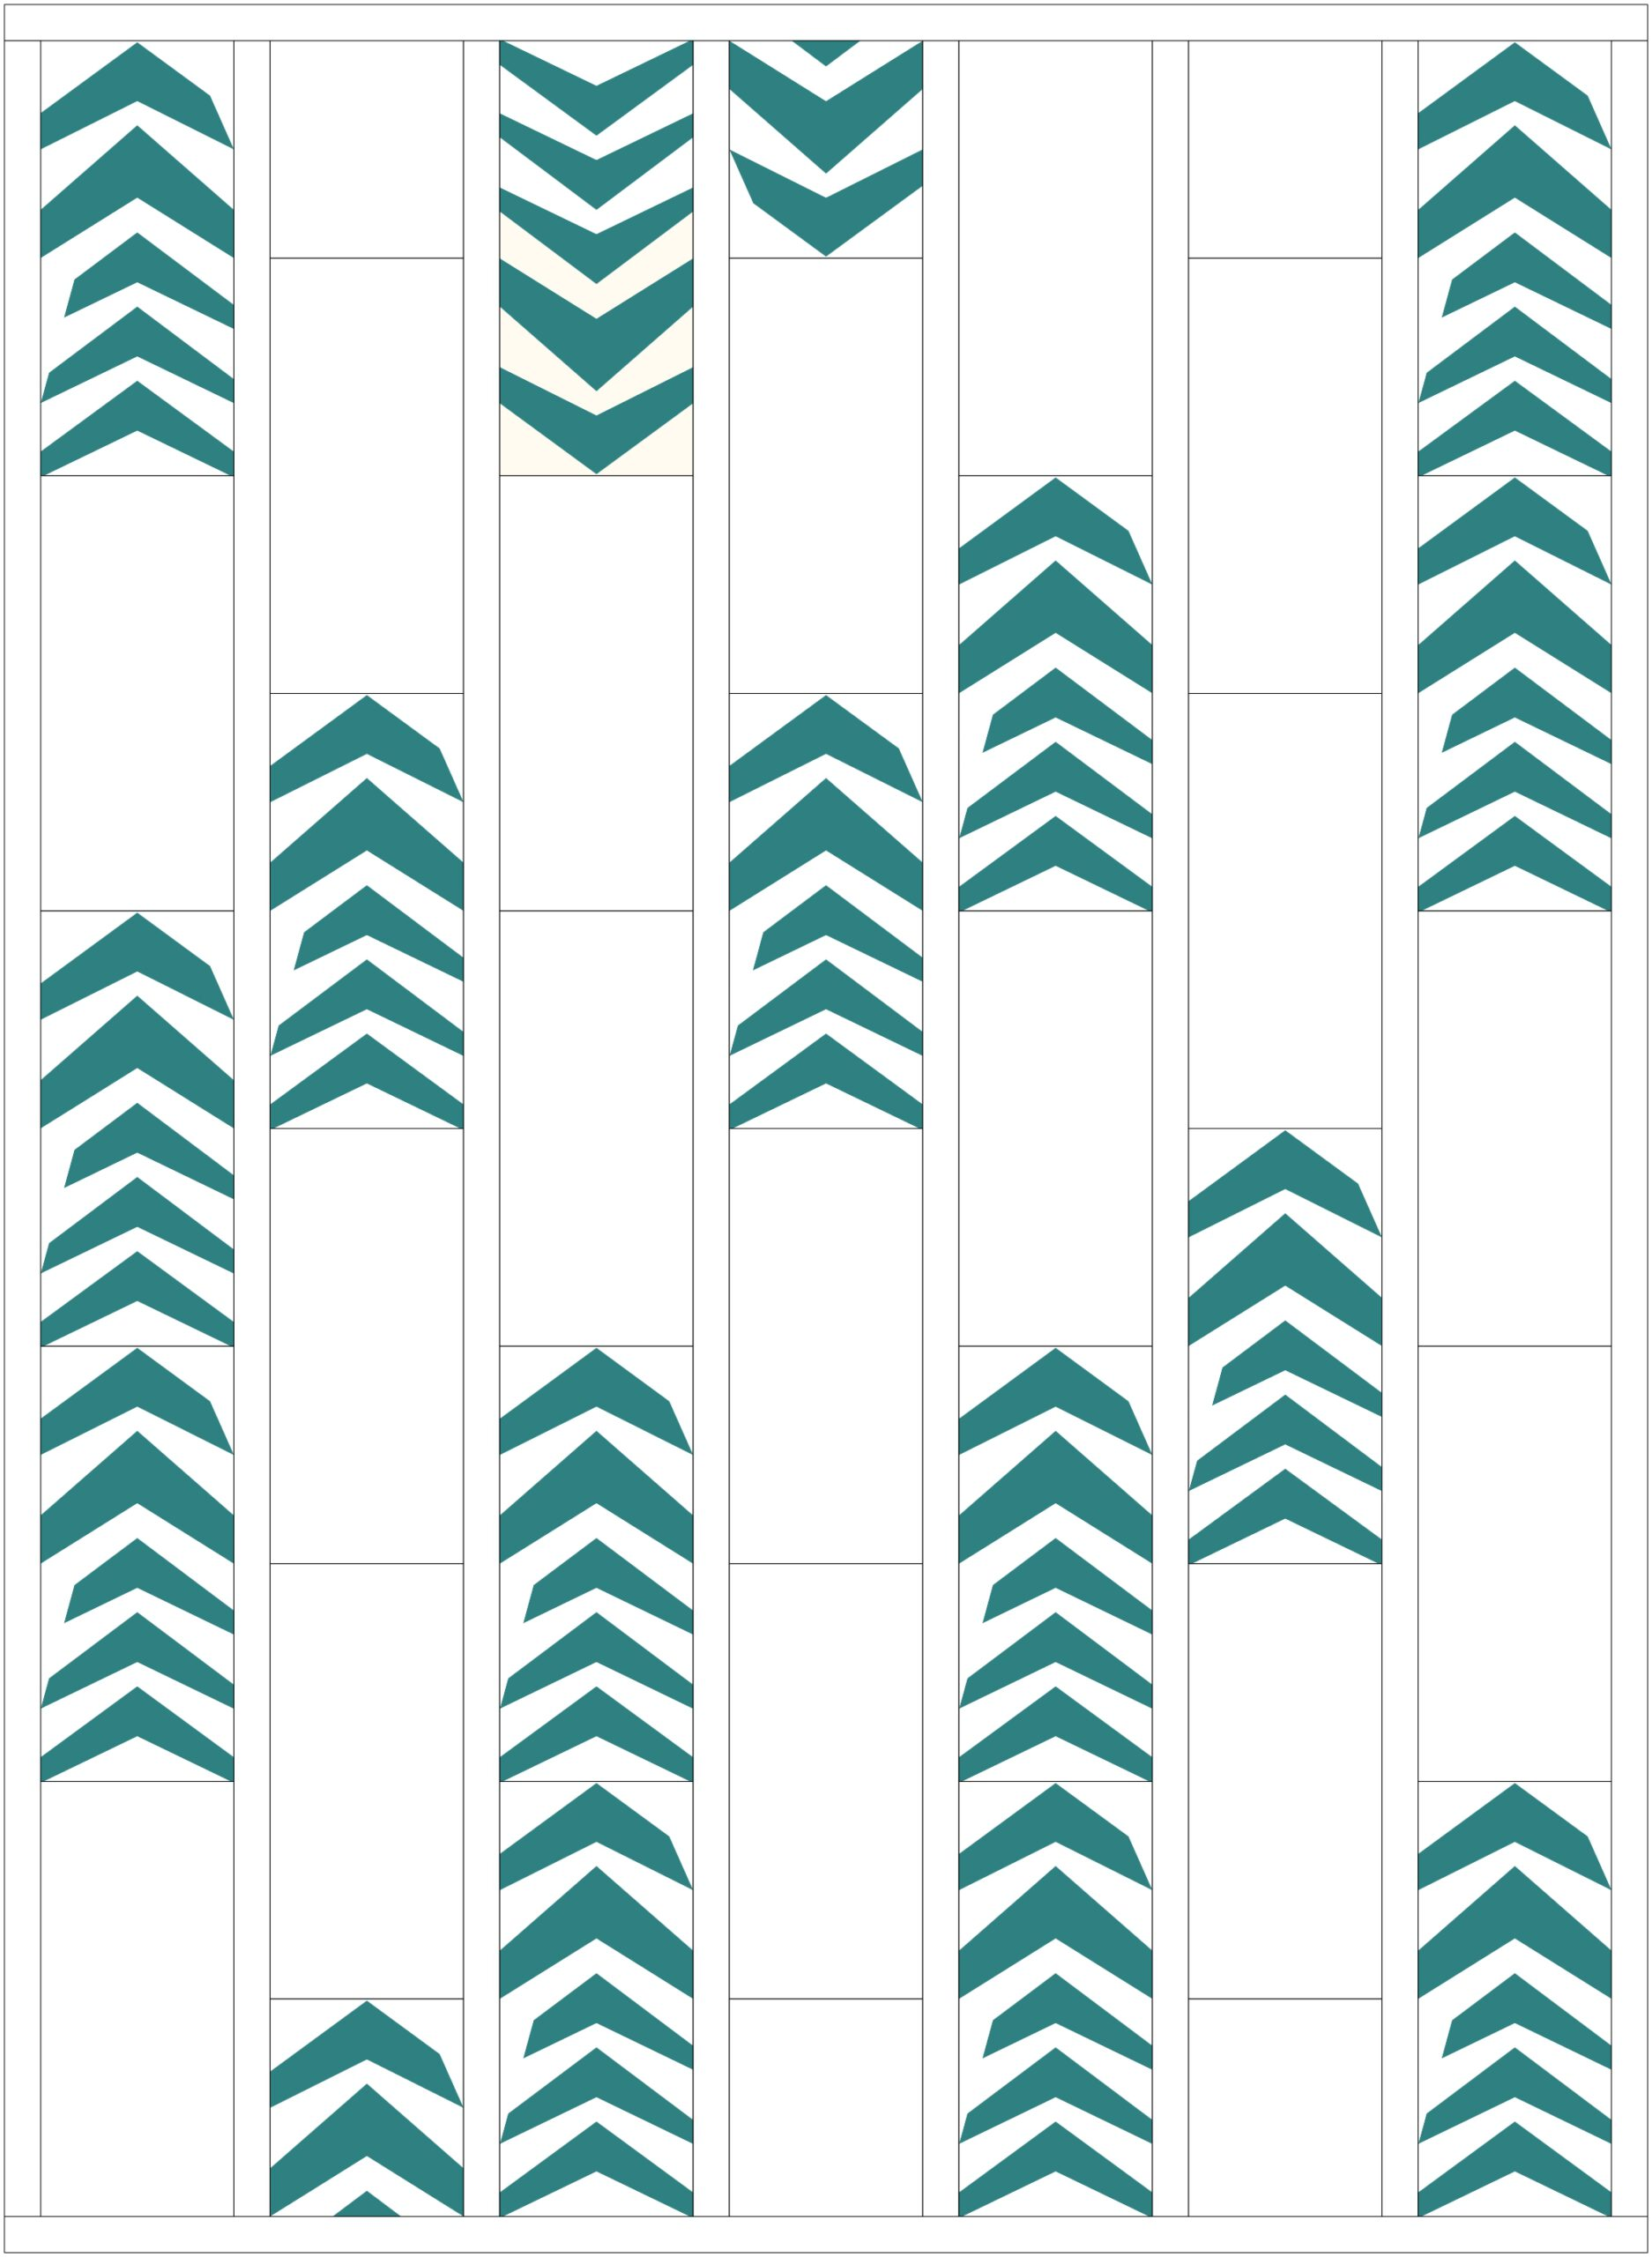 Wonky Chevrons - Alternate Layout Option 3 | mellmeyer.de